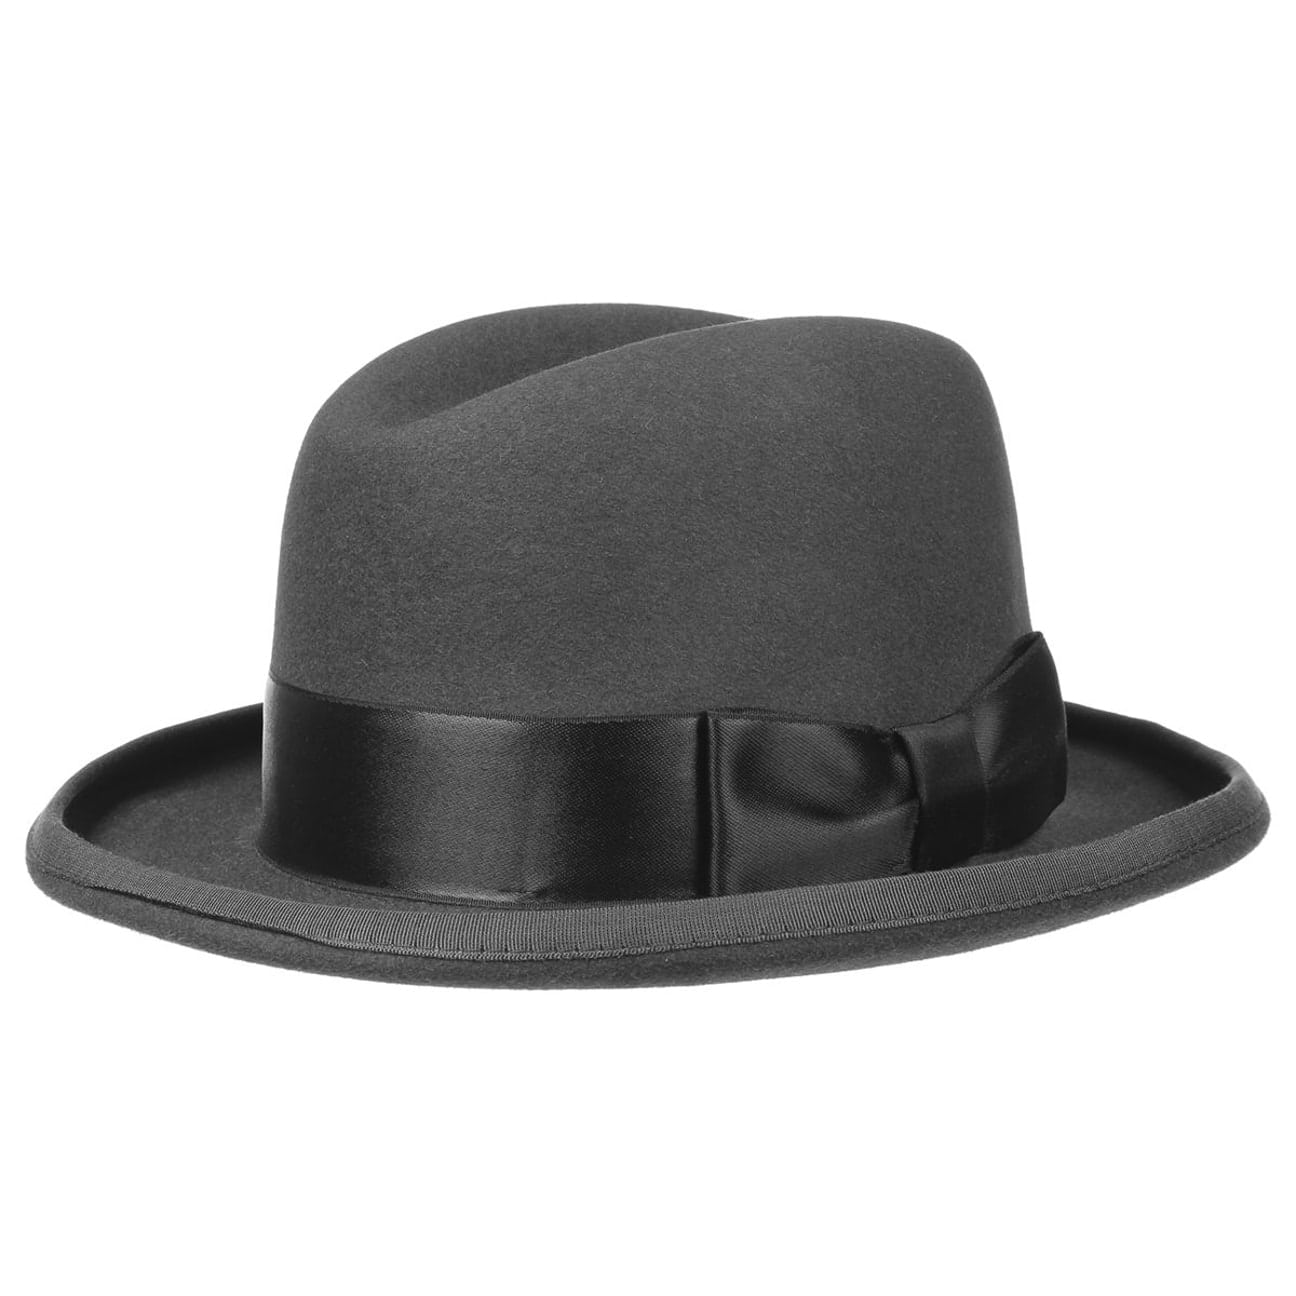 And Cons to Stetson Hats dating.